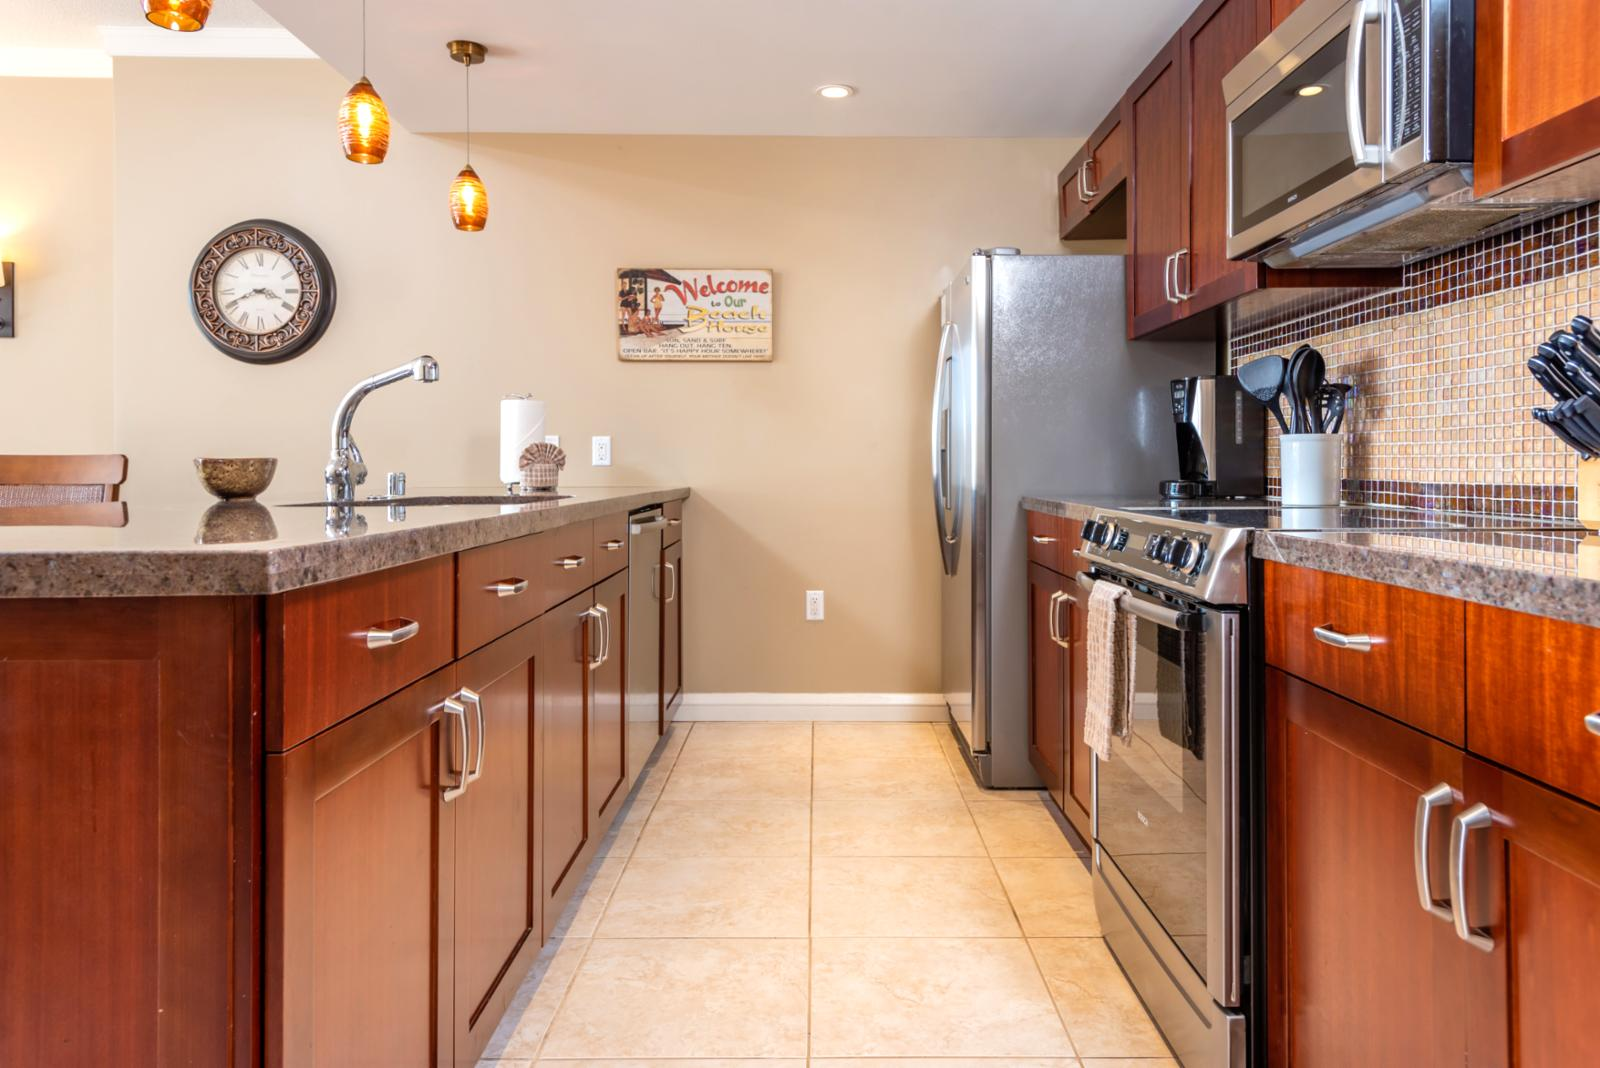 Fantastic stainless appliances equipped with ice maker